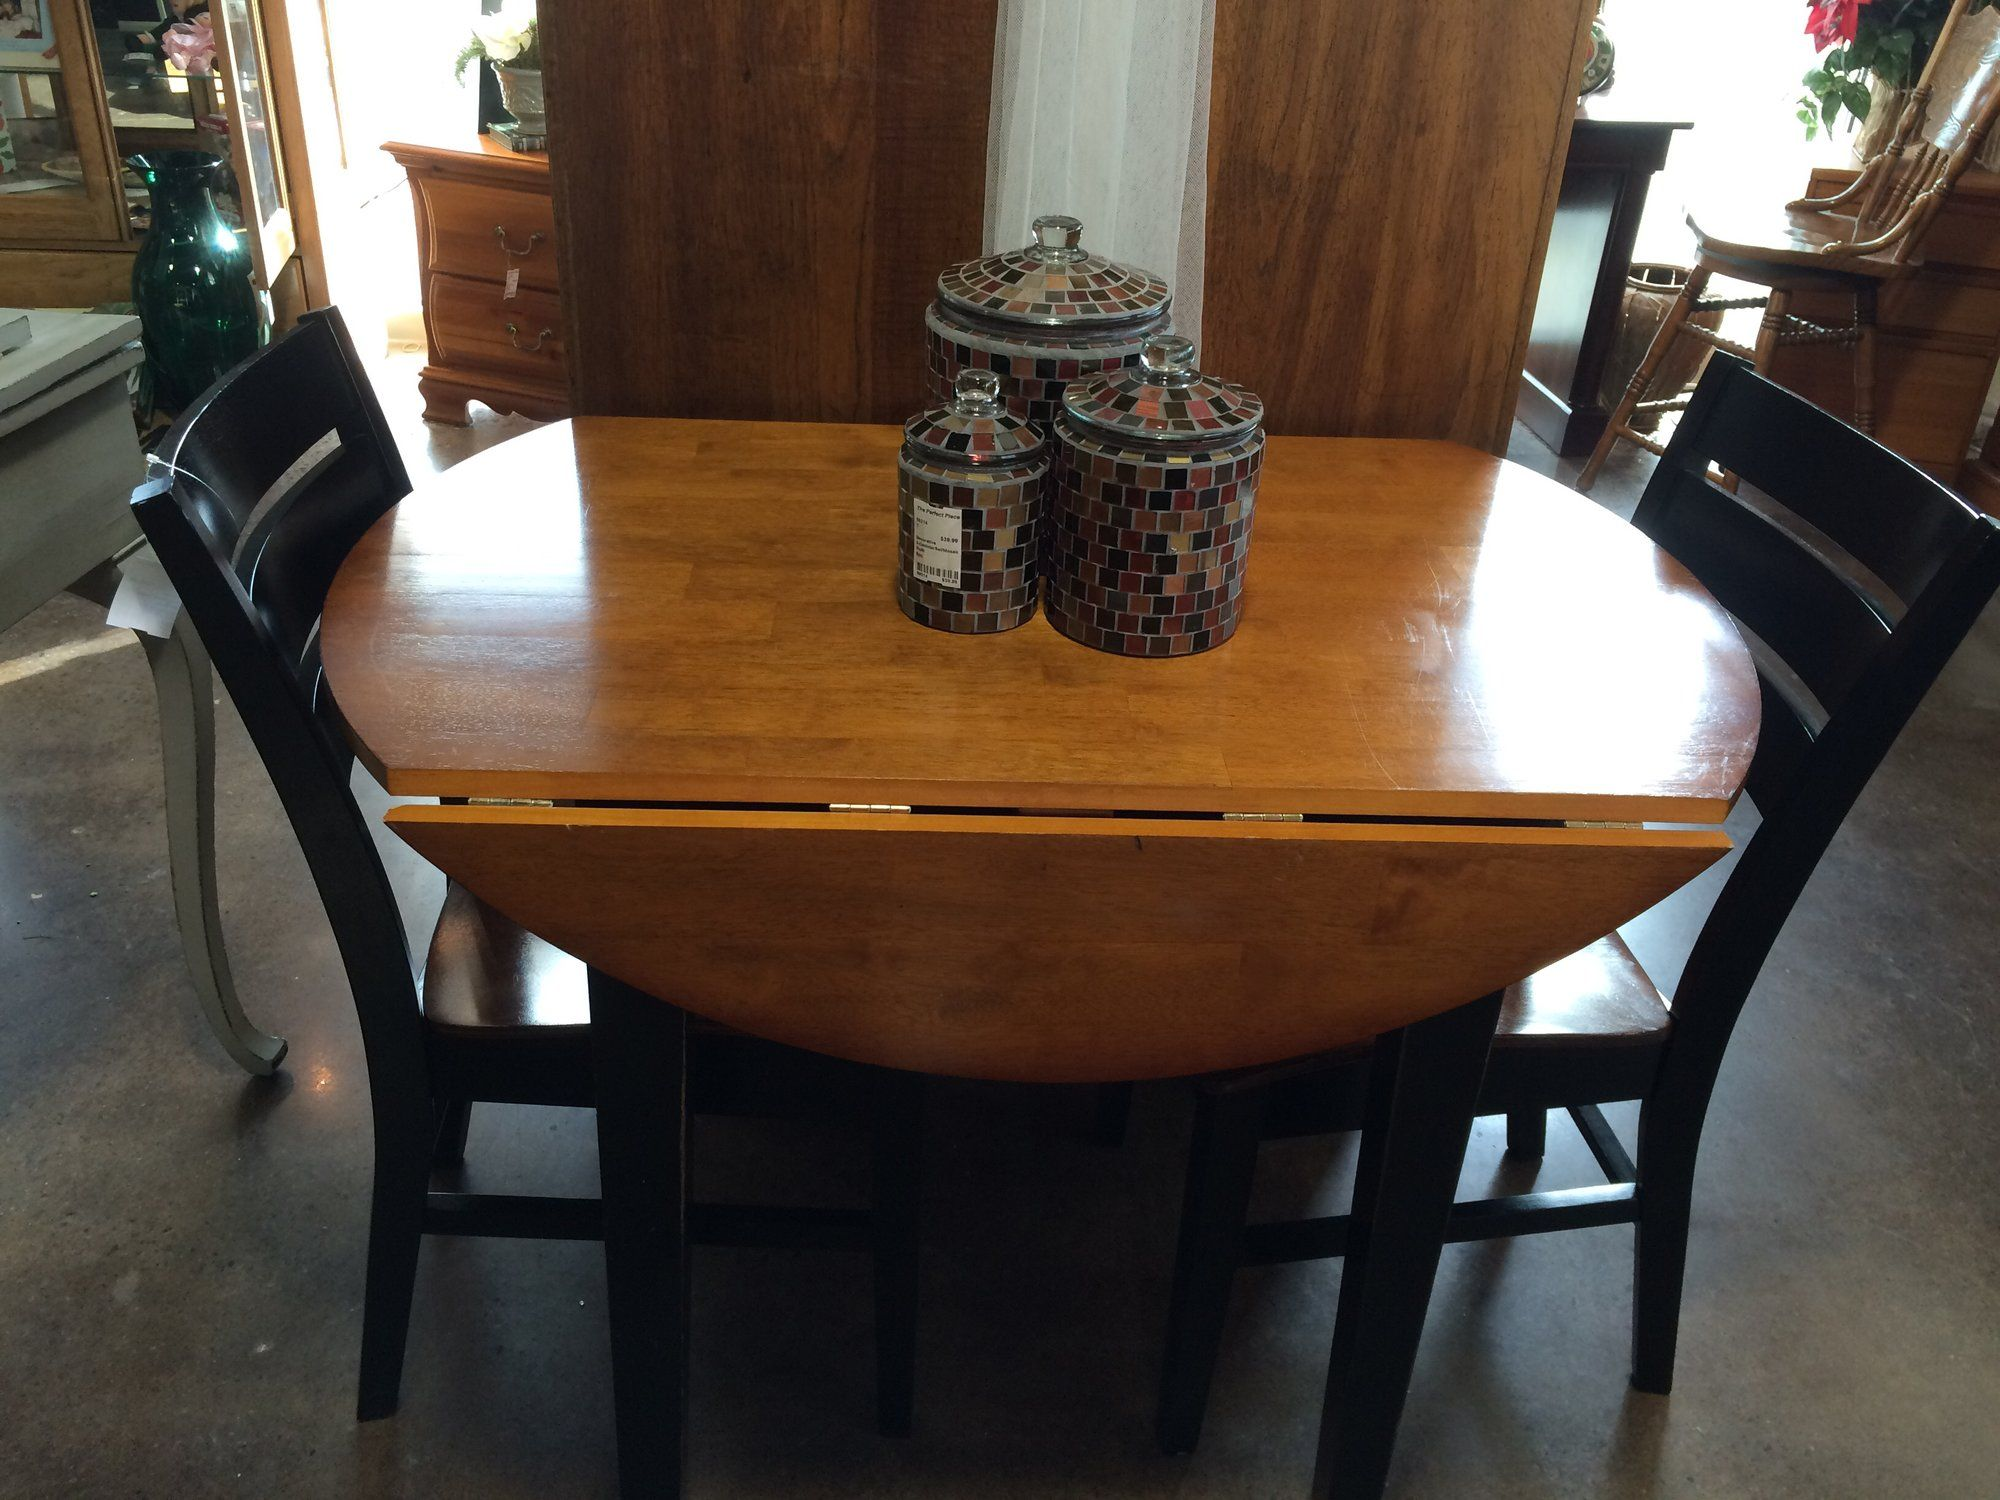 Dining Room Table With Drop Down Sides Magnificent This Twotone Brown & Black Dropside Table & 2 Chairs Is Design Ideas